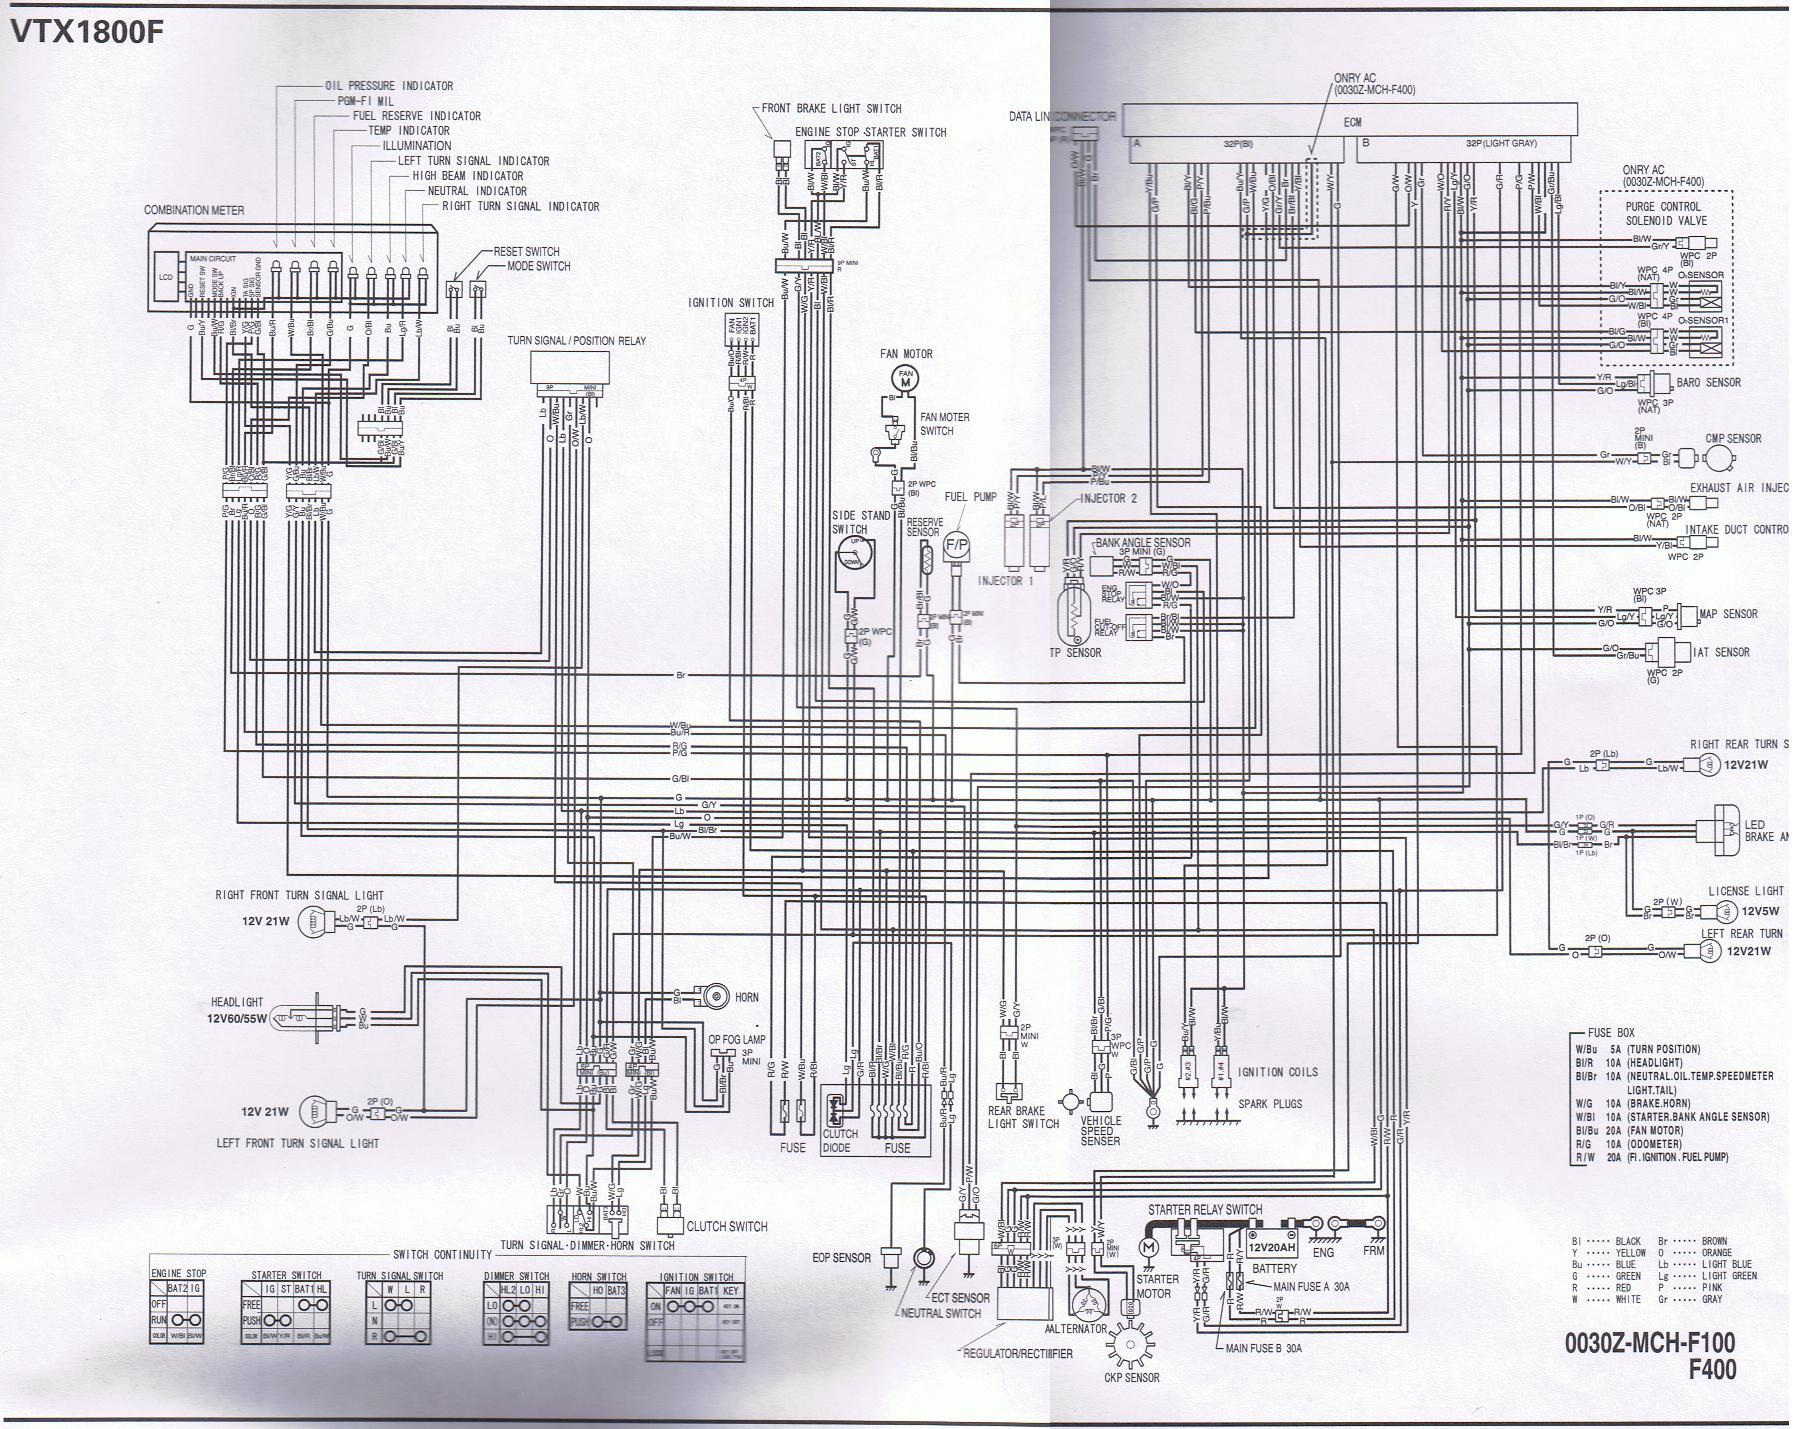 2003 victory wiring diagram 2003 auto wiring diagram schematic motorcycle wire schematics bareass choppers motorcycle tech pages on 2003 victory wiring diagram